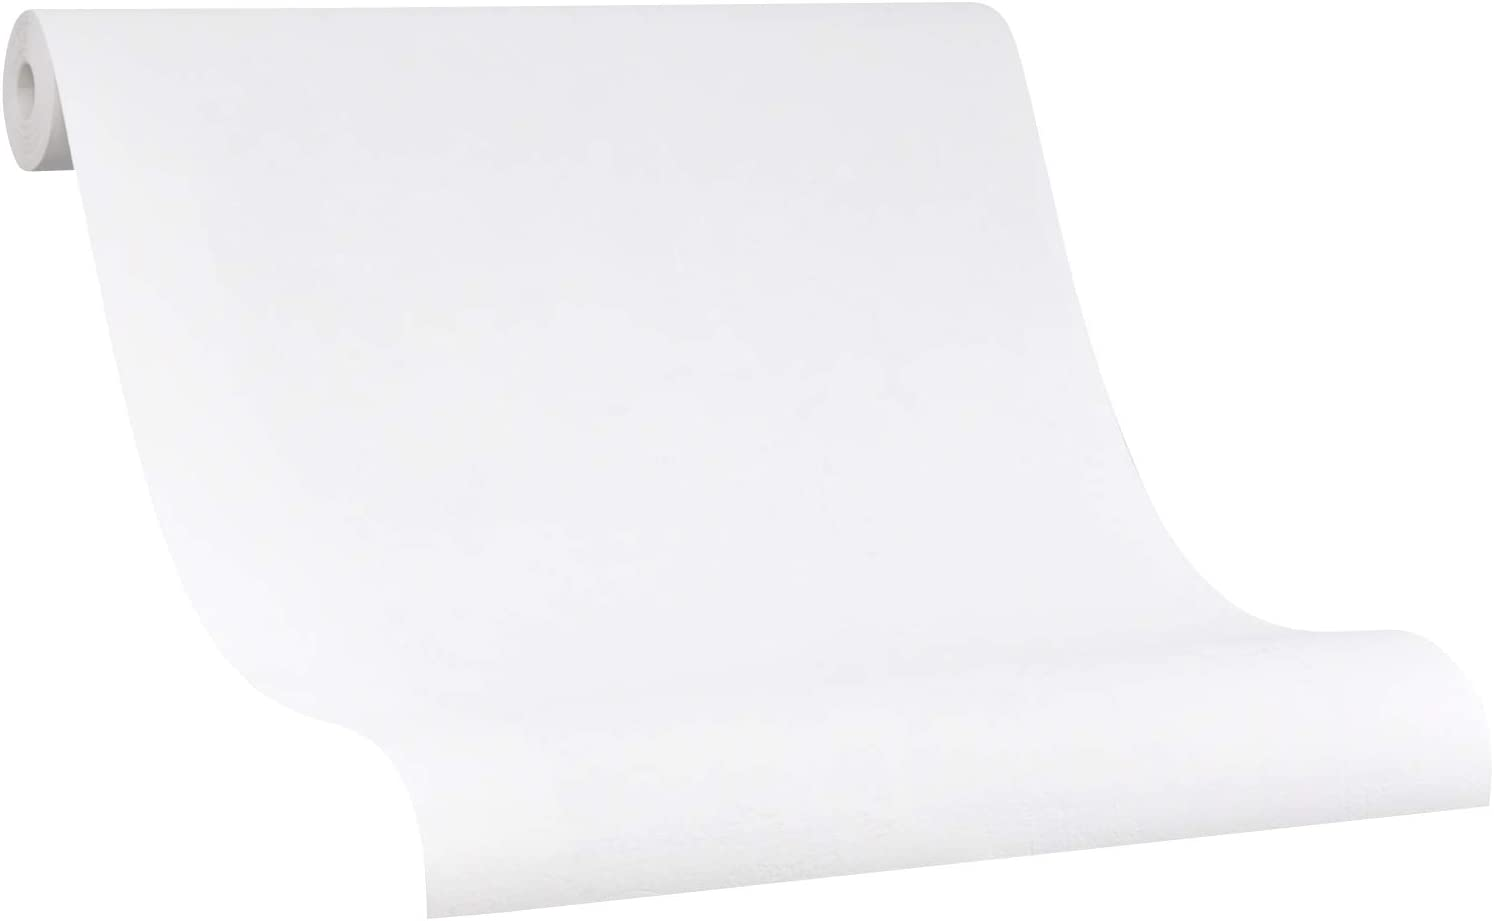 Drawing Paper Roll White Colouring Paper for Children High Quality German 10.05 m x 0.53 m